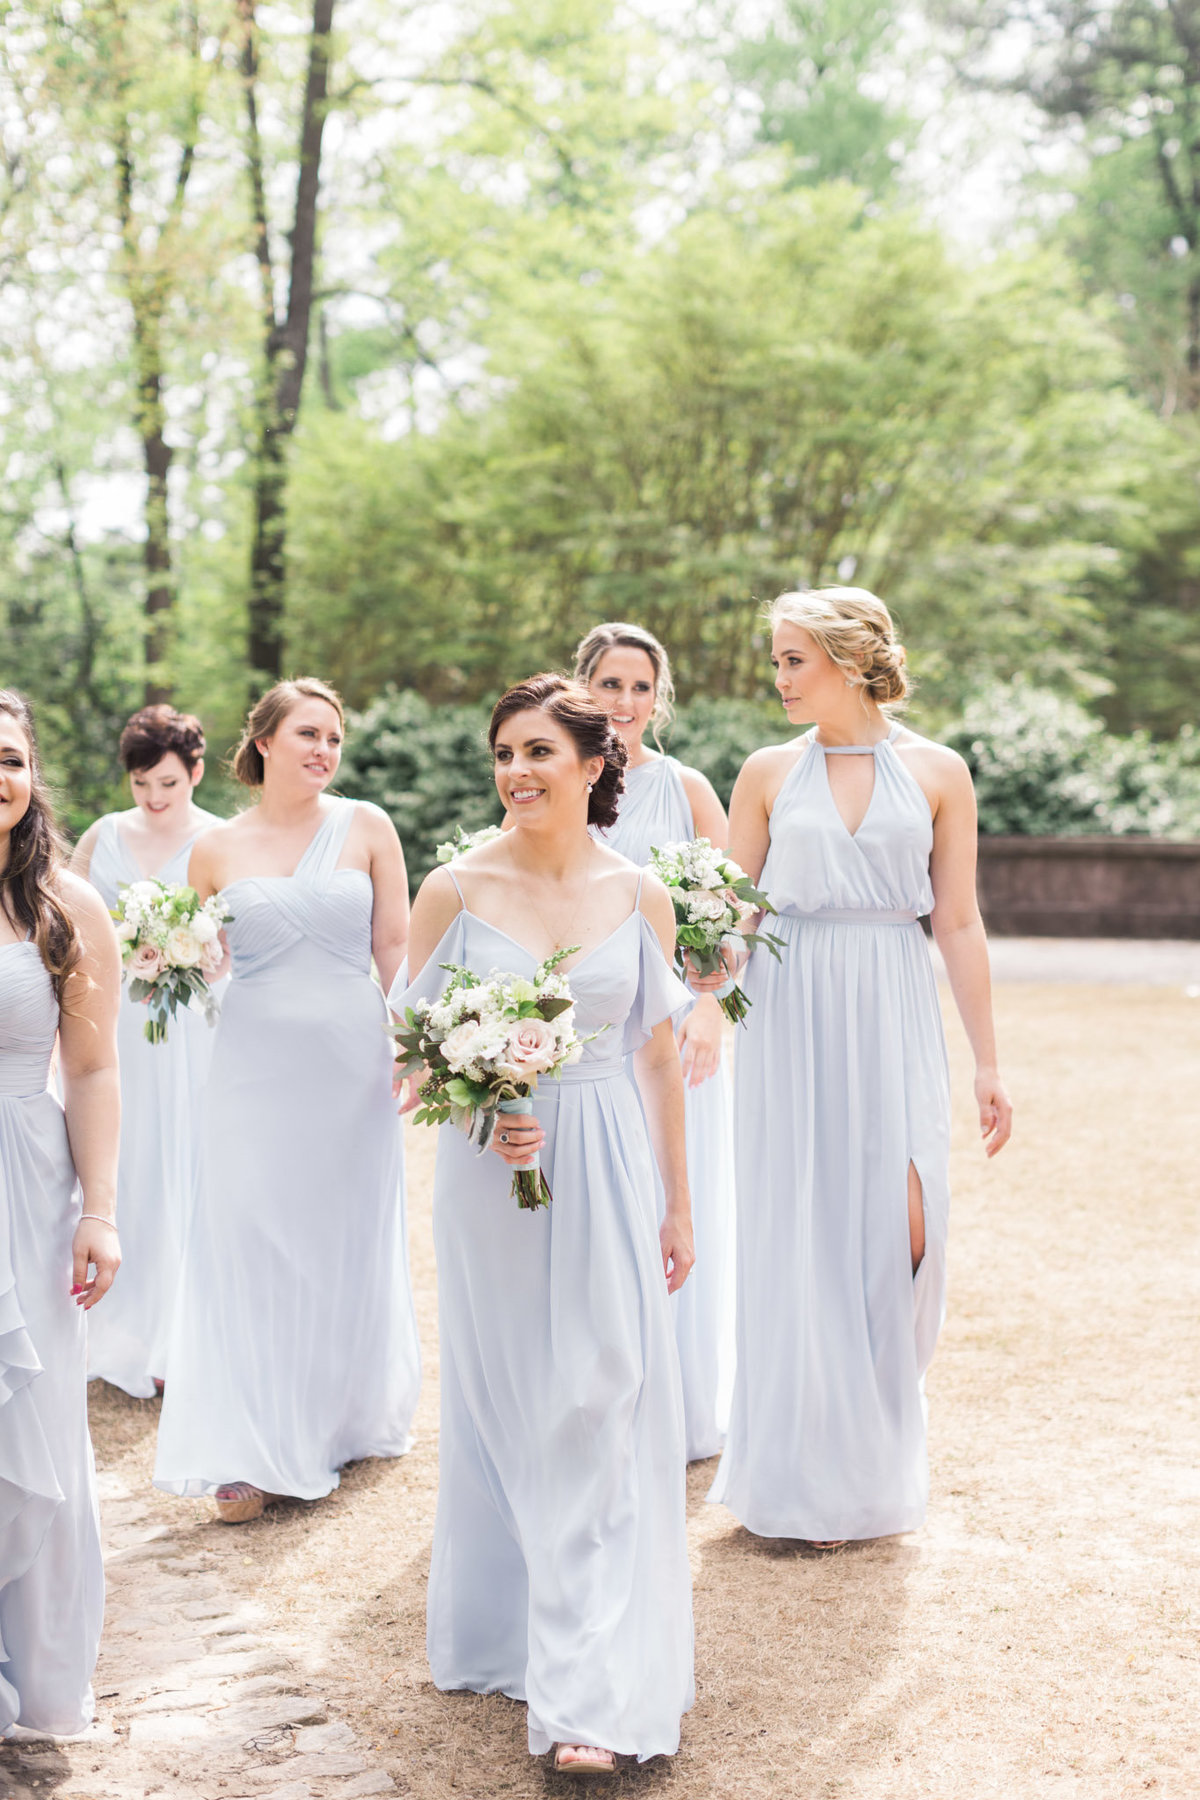 These bridesmaids dresses flowed so beautifully as they walked through the Swan House gardens. Photo by luxury destination wedding photographer Rebecca Cerasani.